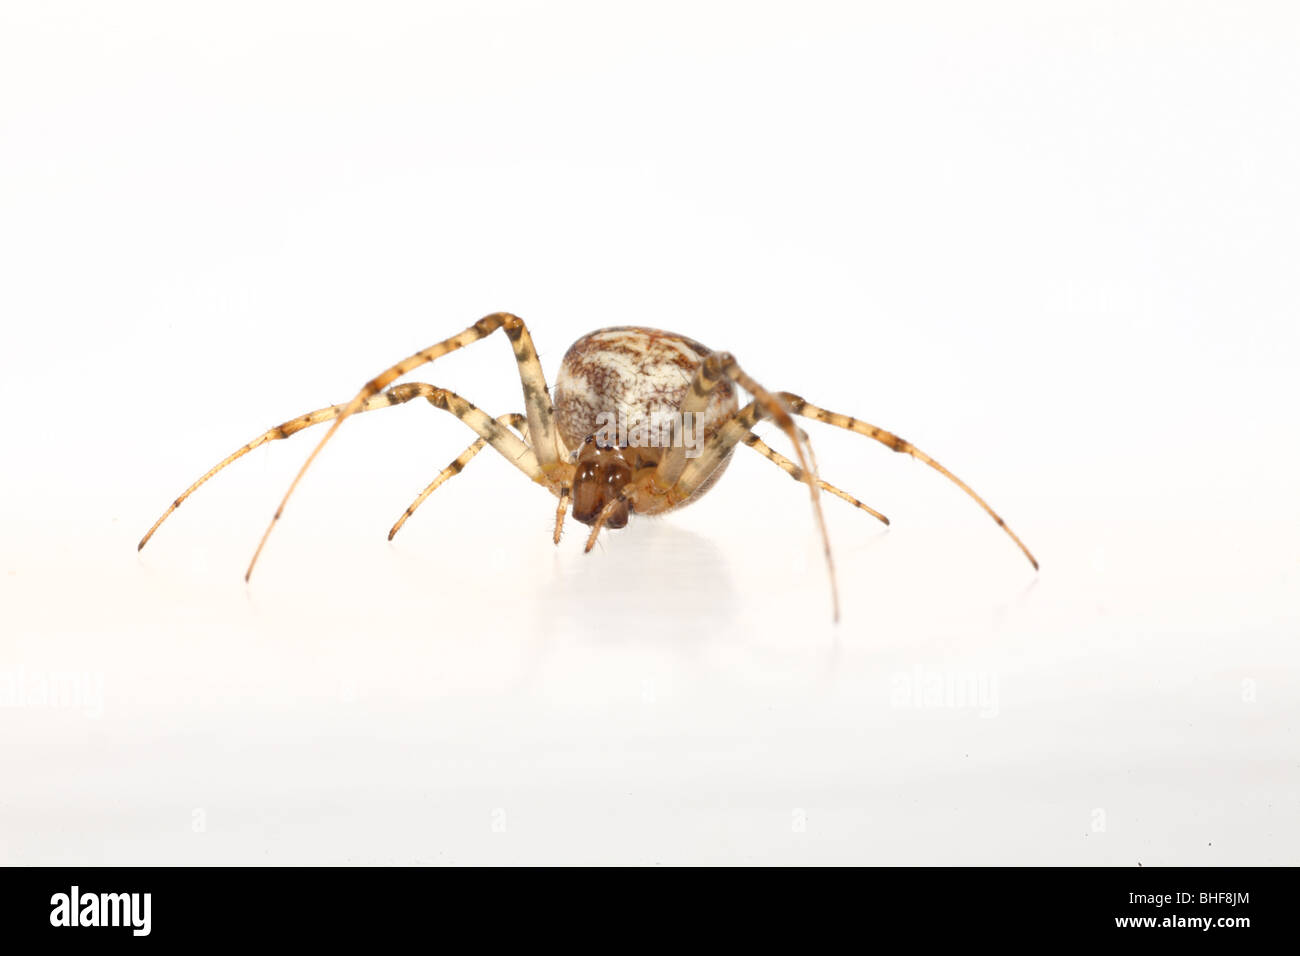 Crab spider (Xysticus cristatus) female. Live spider photographed against a white background on a portable studio. - Stock Image